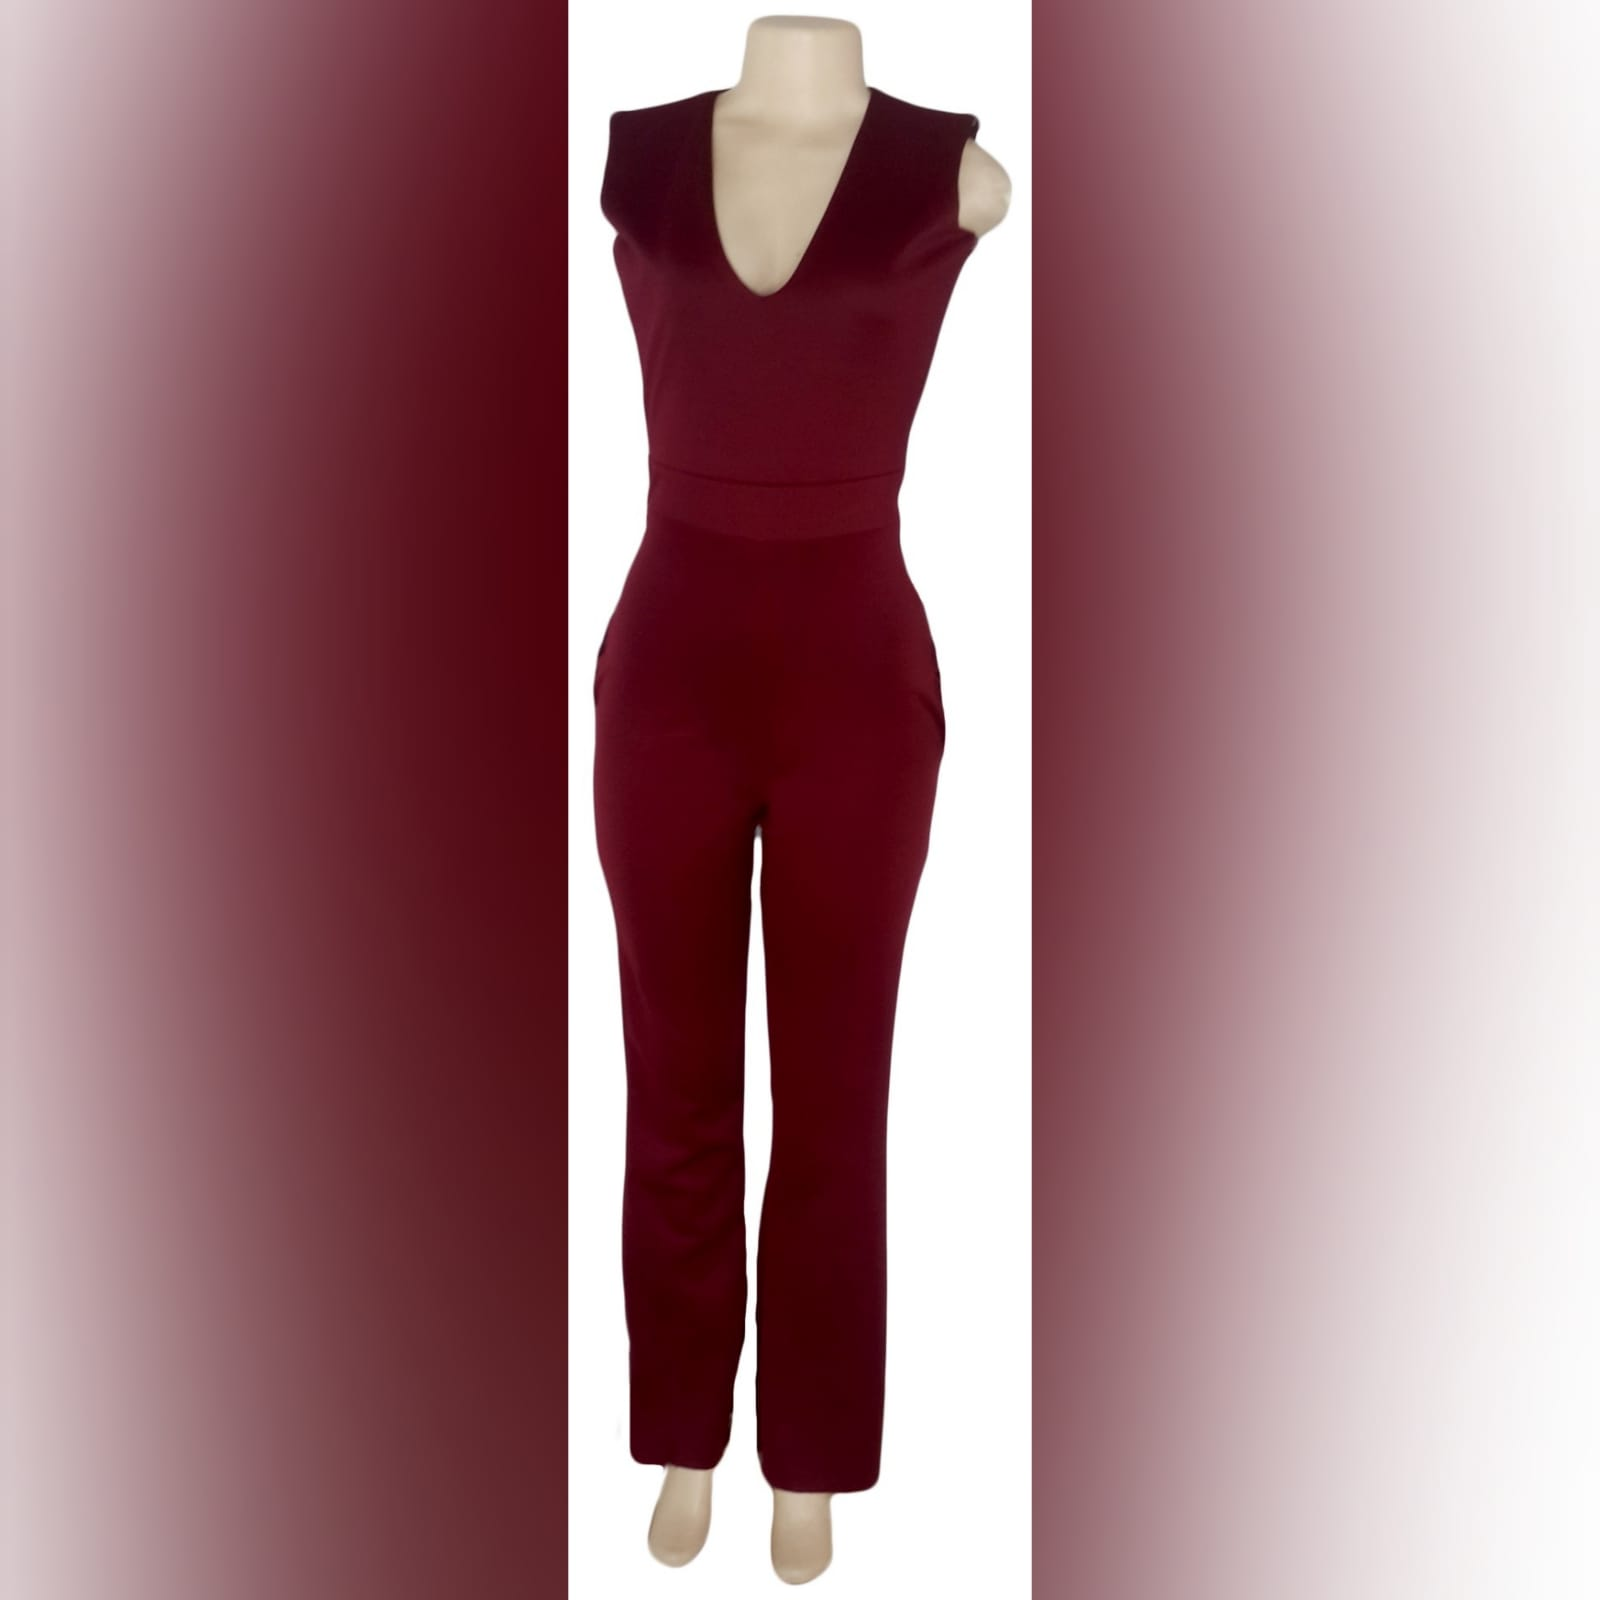 3 piece burgundy evening outfit 3 3 piece burgundy evening outfit. Bodysuit with a v neckline, with a removable peplum belt. With a removable shoulder cape